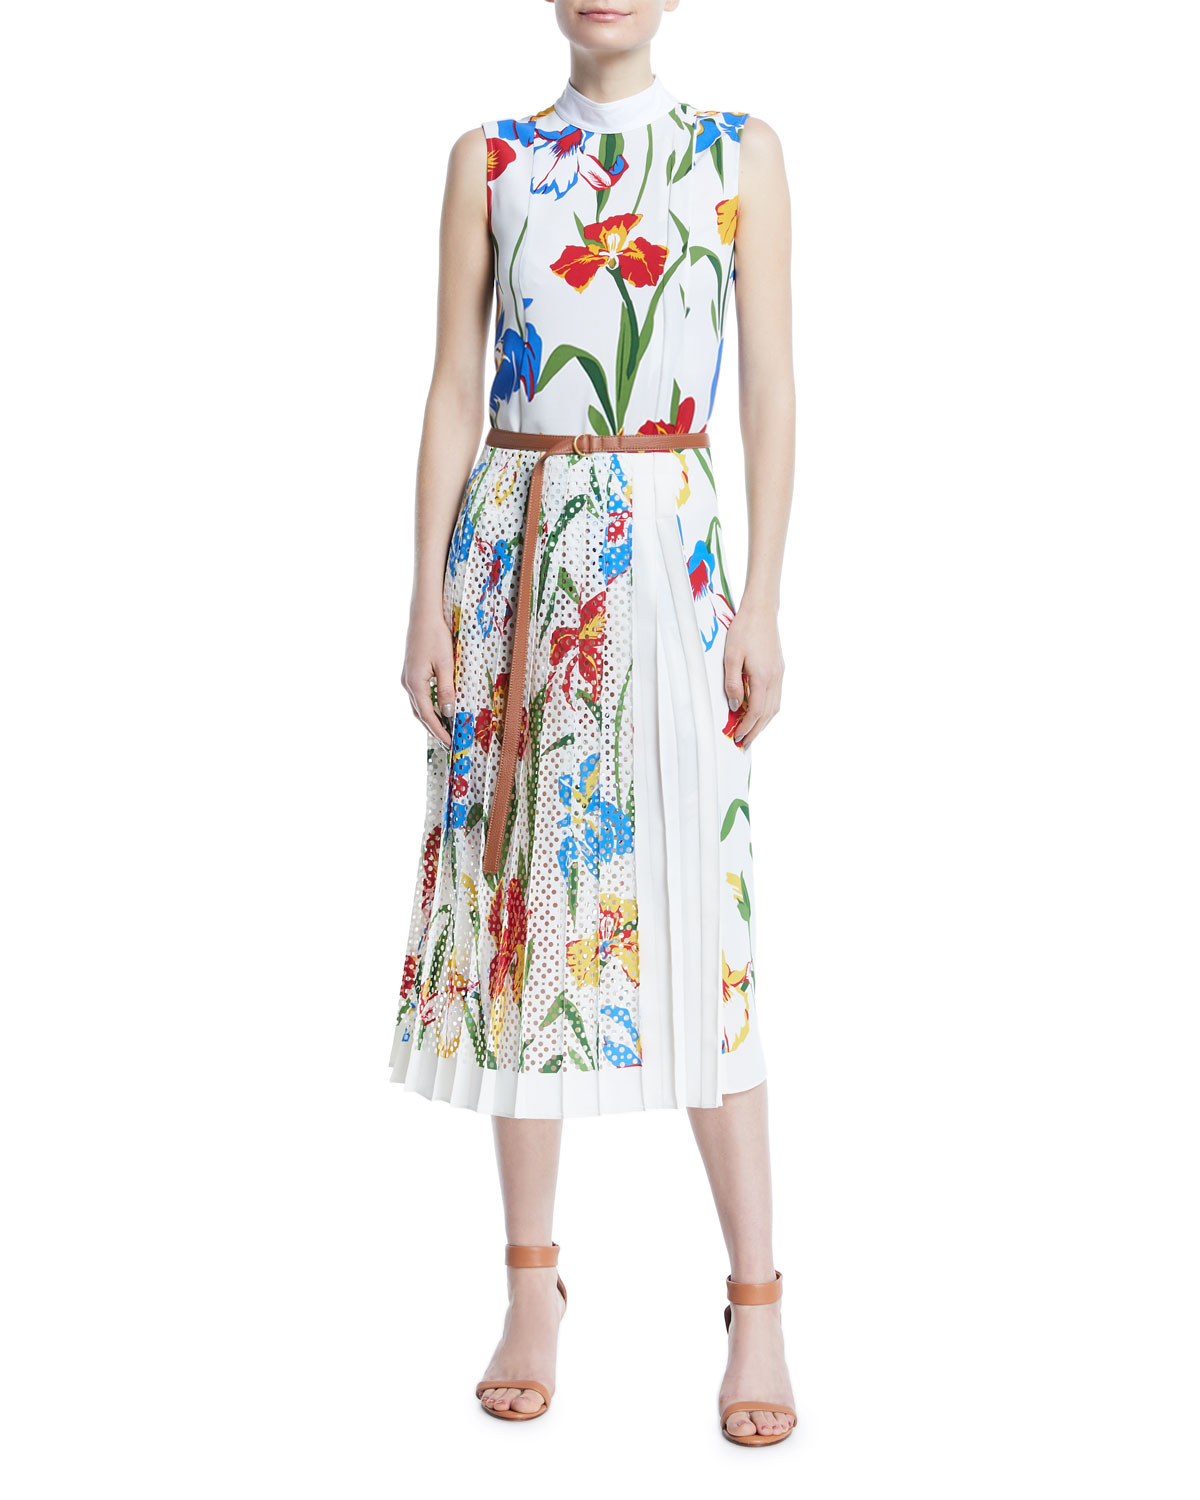 Carine Floral-Print Sleeveless Dress